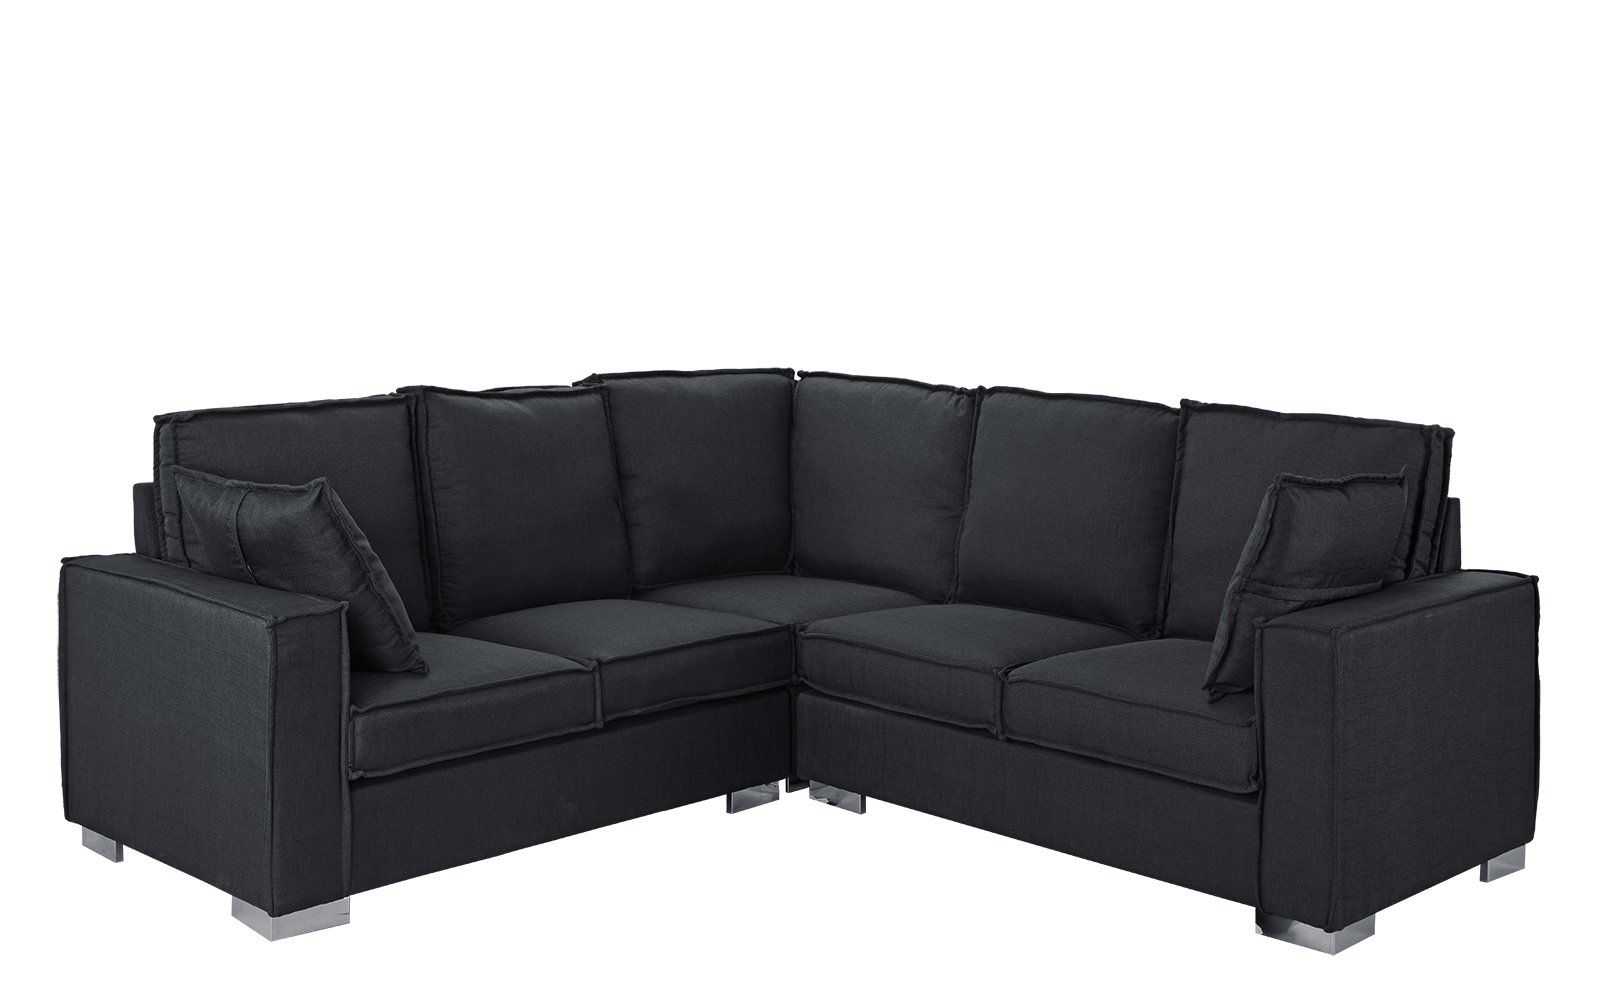 Turia Modern L-Shape Sectional Sofa | Living Rooms | Sectional sofa ...